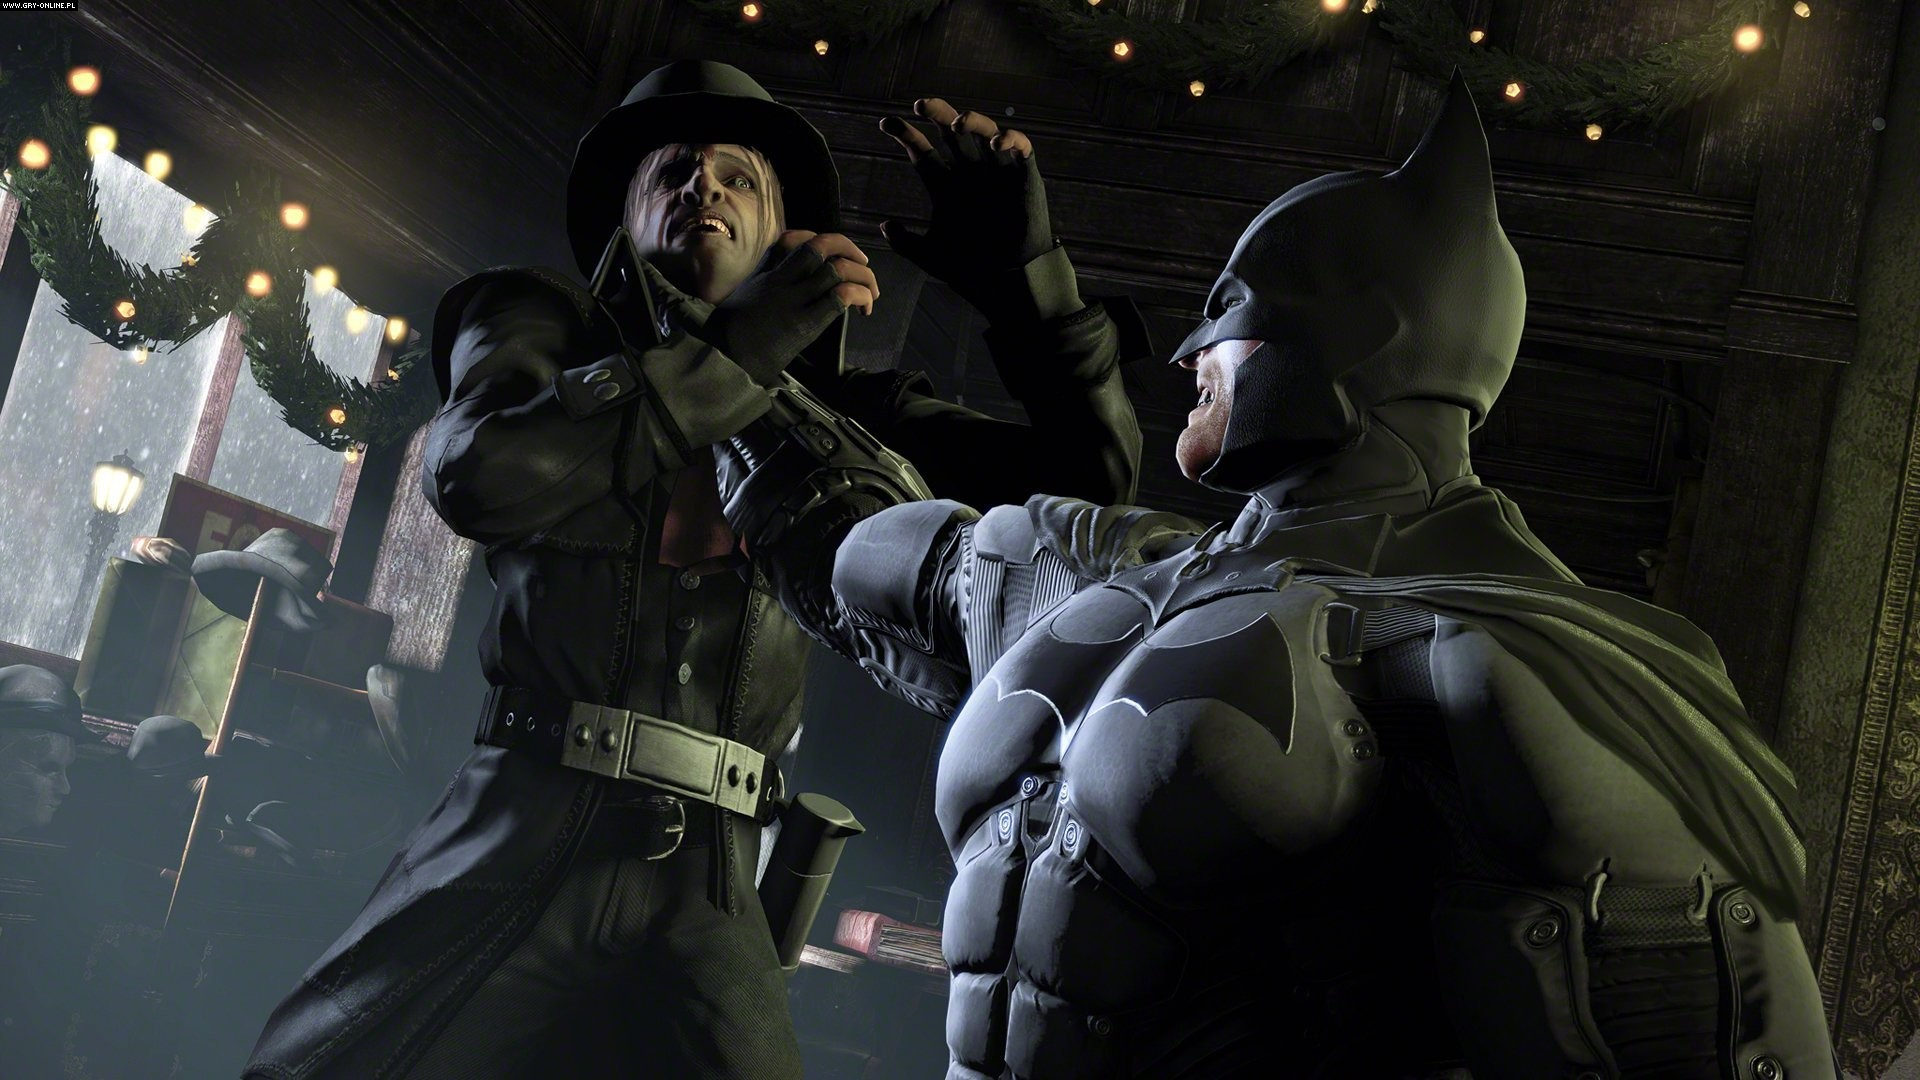 1920x1080 Video Game - Batman: Arkham Origins Batman Wallpaper